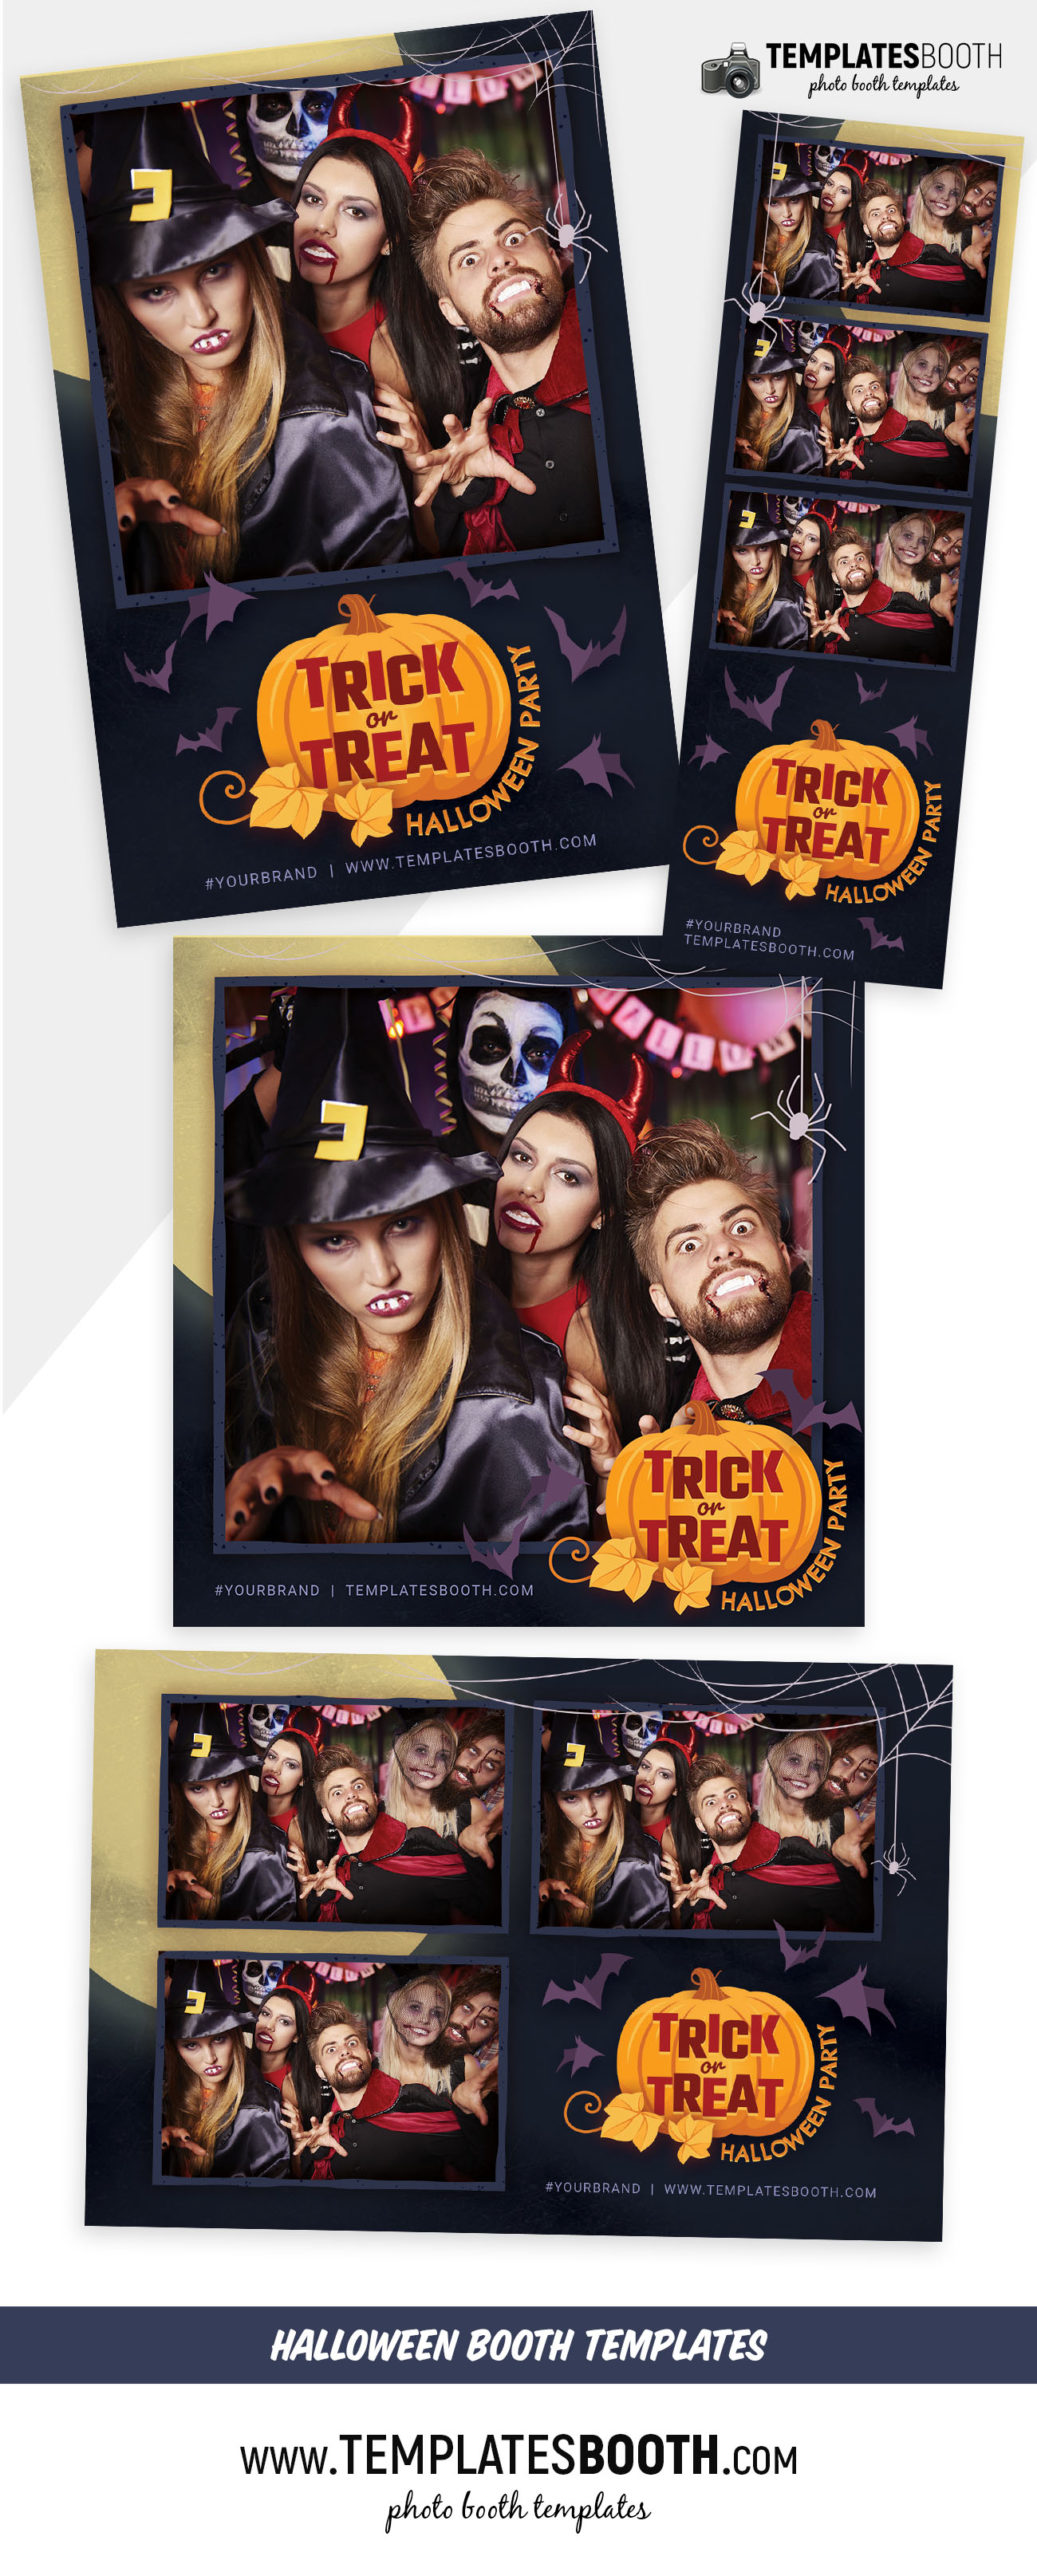 Trick or Treat Photo Booth Template (Full Preview)